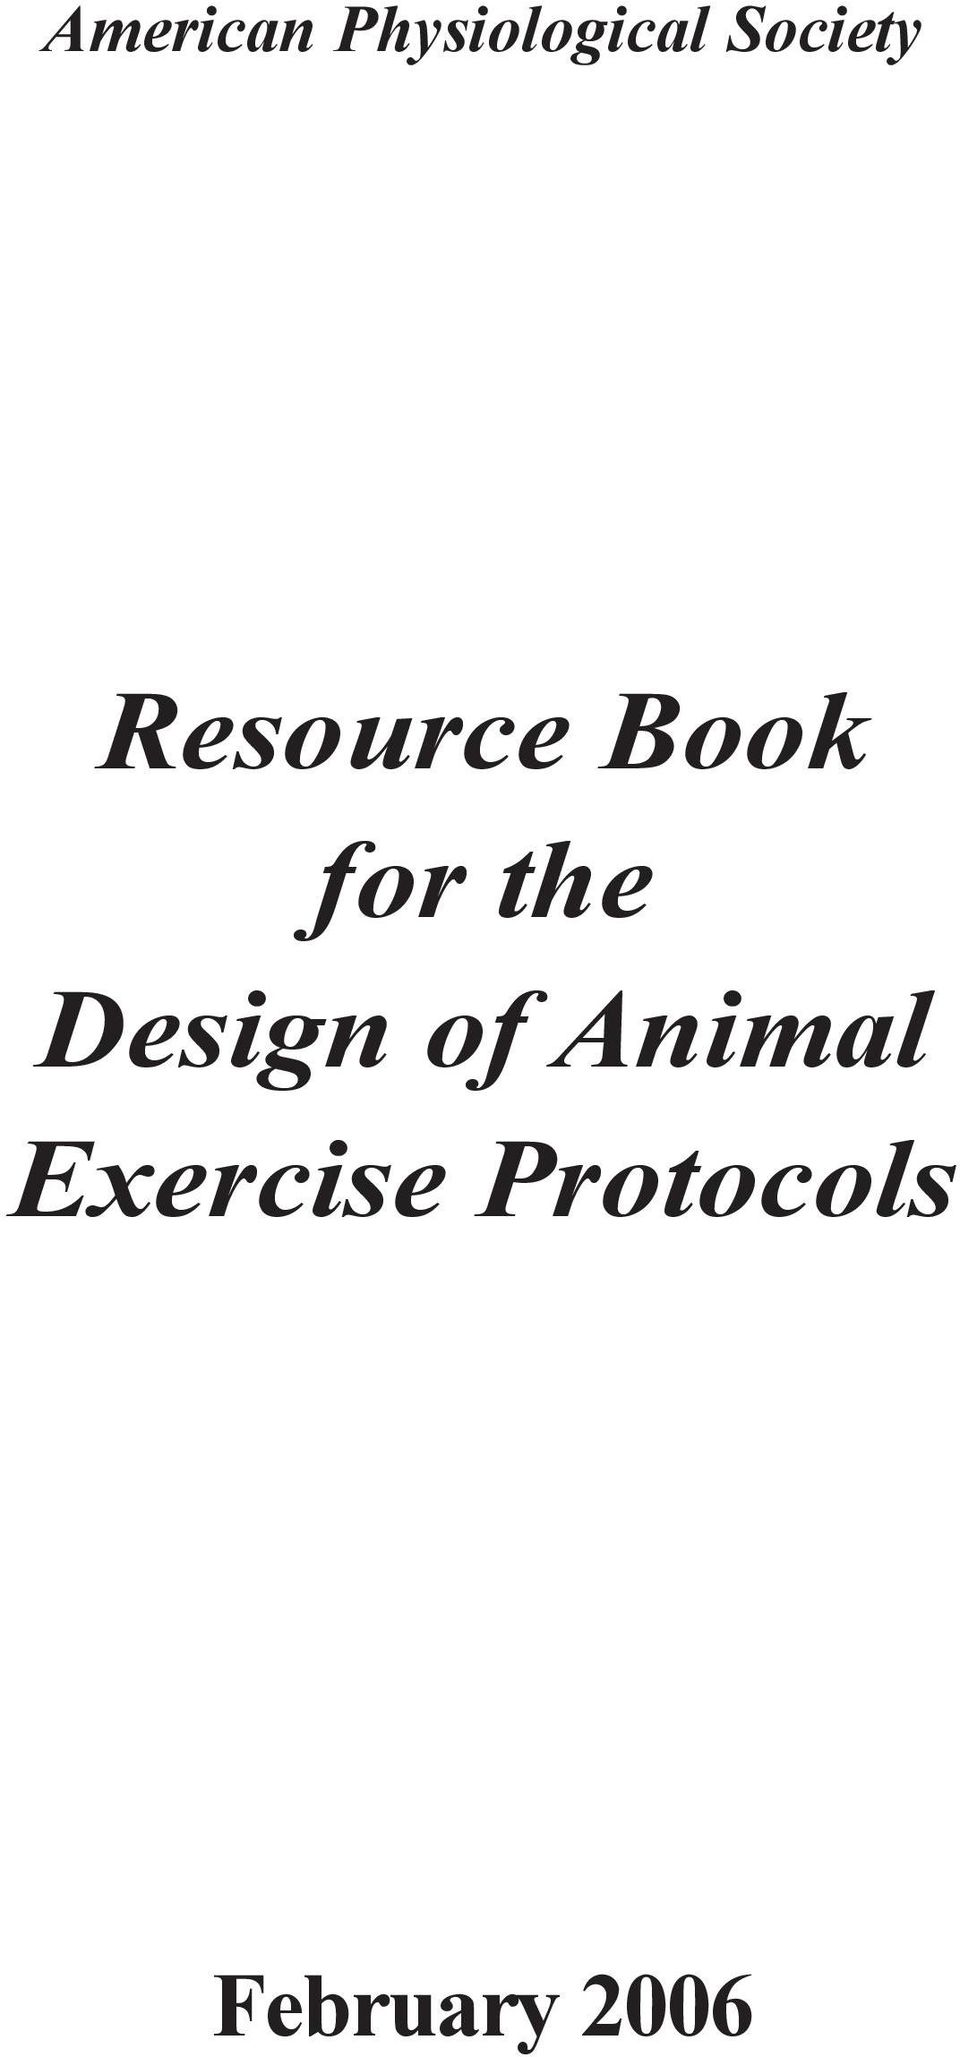 the Design of Animal